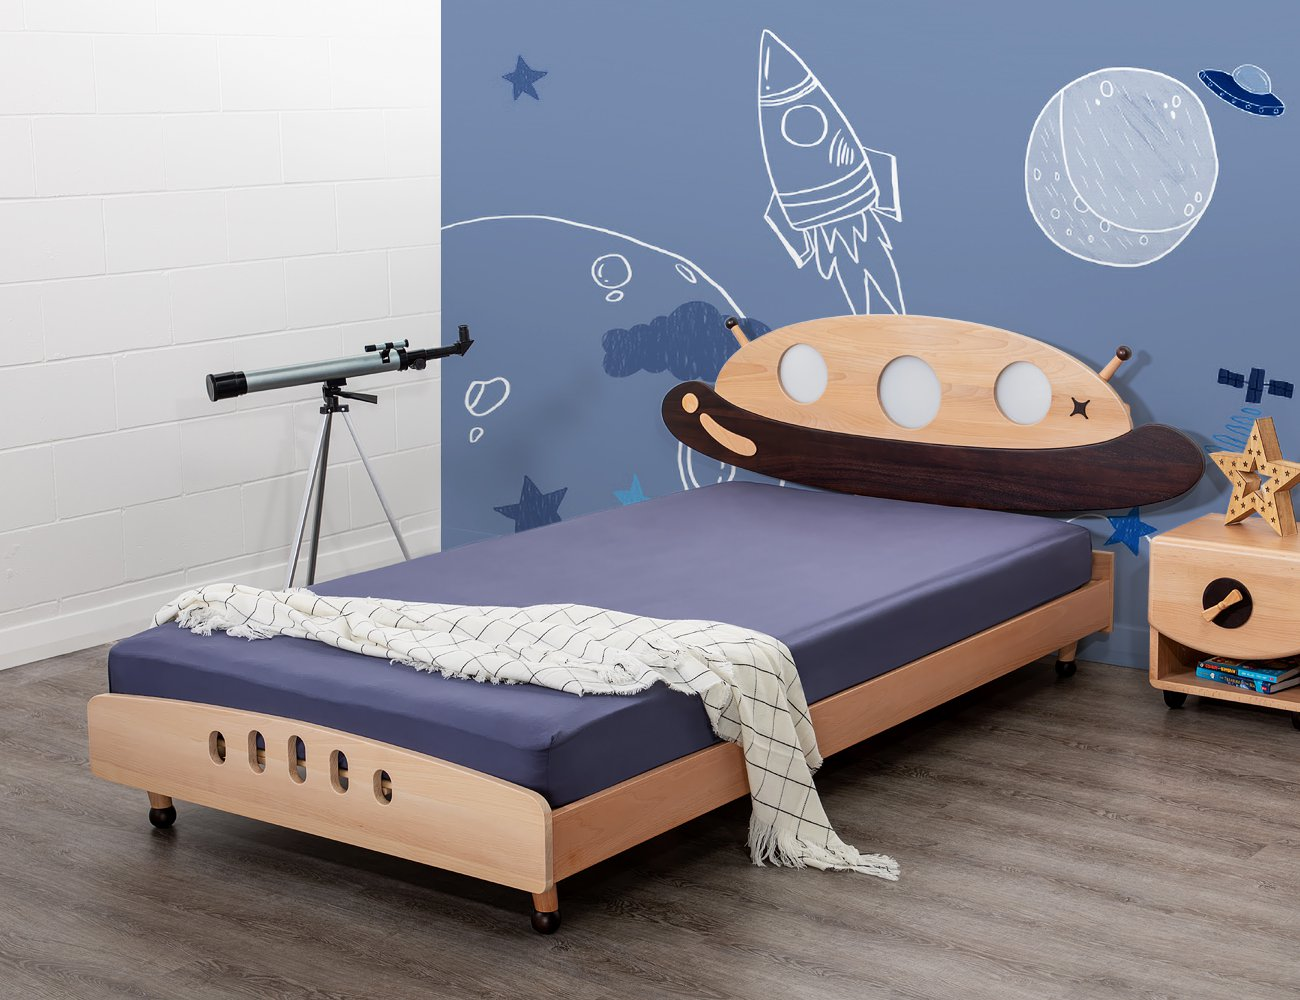 UFO King Single Bed Frame